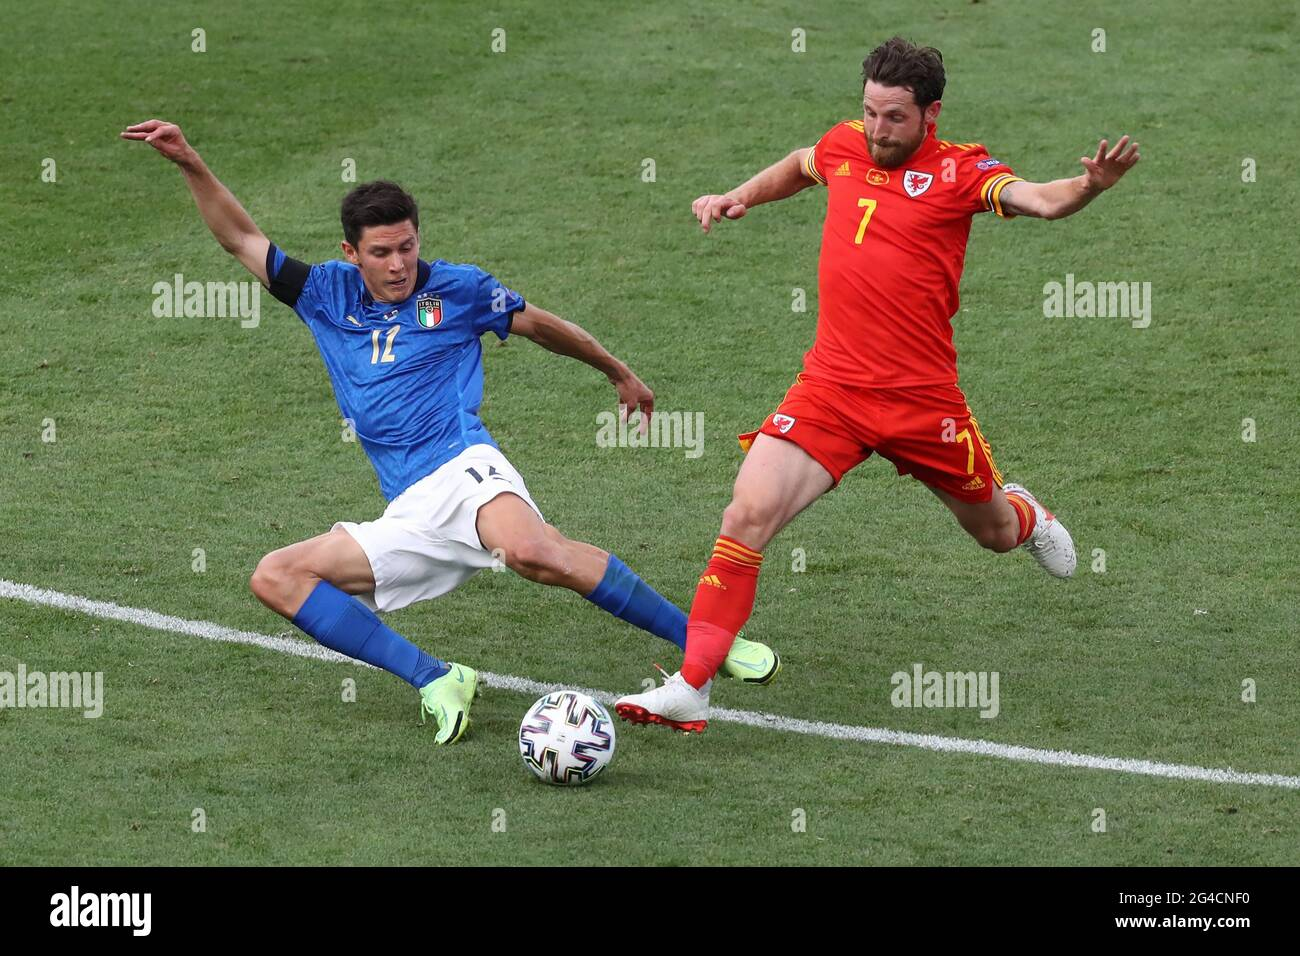 Rome, Italy, 20th June 2021. Matteo Pessina of Italy challenges Joe Allen of Wales during the UEFA Euro 2020 match at Stadio Olimpico, Rome. Picture credit should read: Jonathan Moscrop / Sportimage Stock Photo